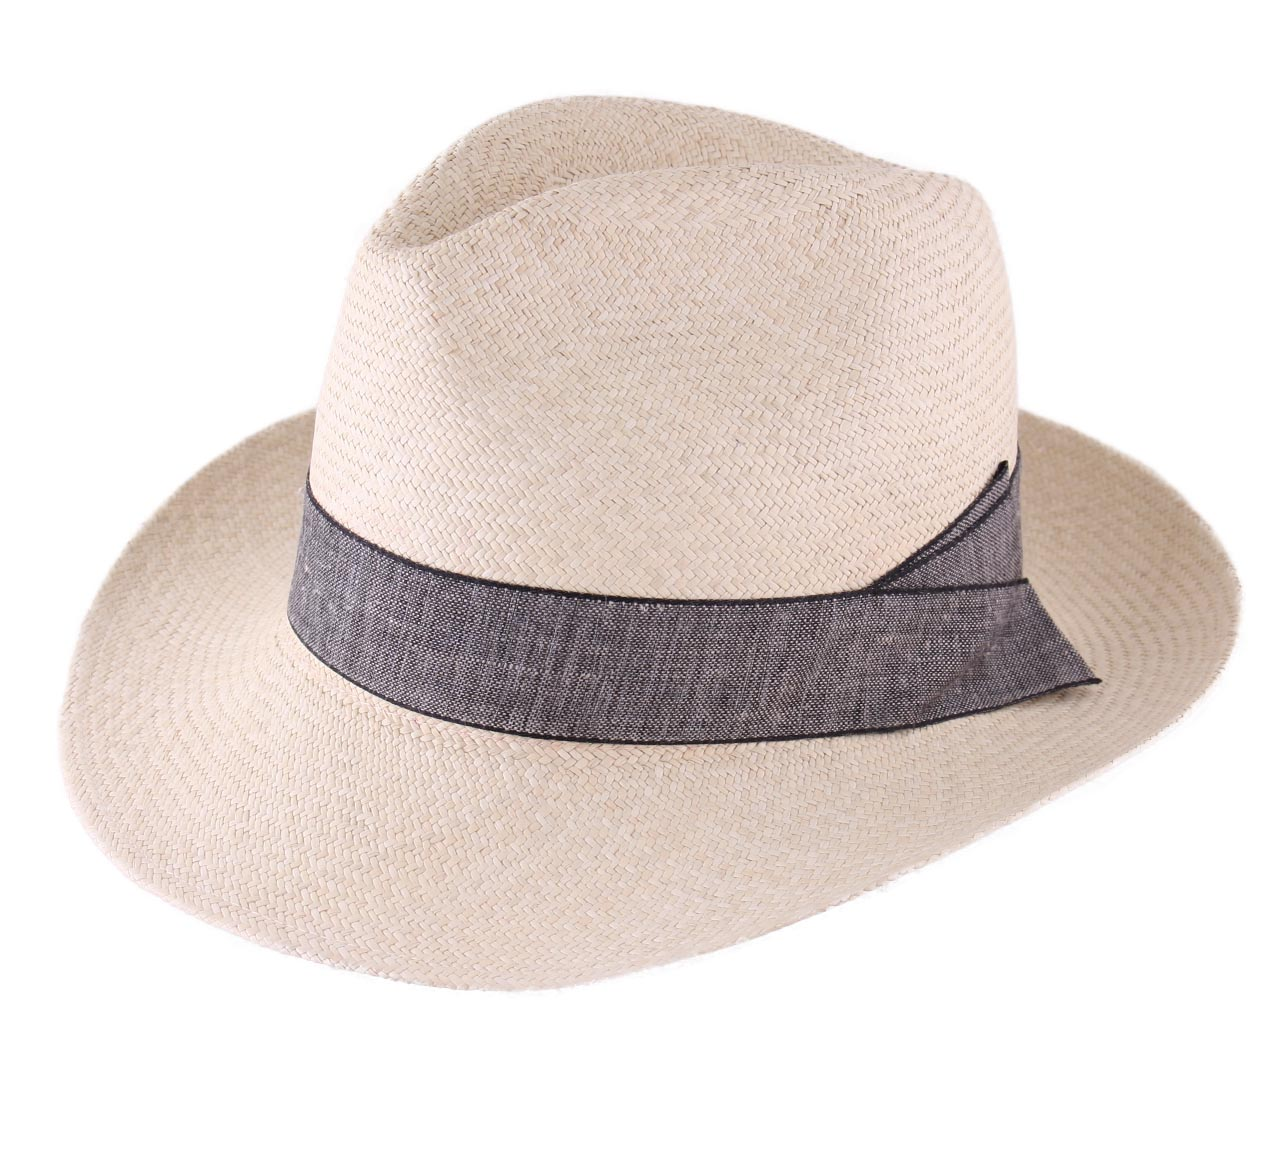 458bdad49 Le Linette - Hats Classic Italy